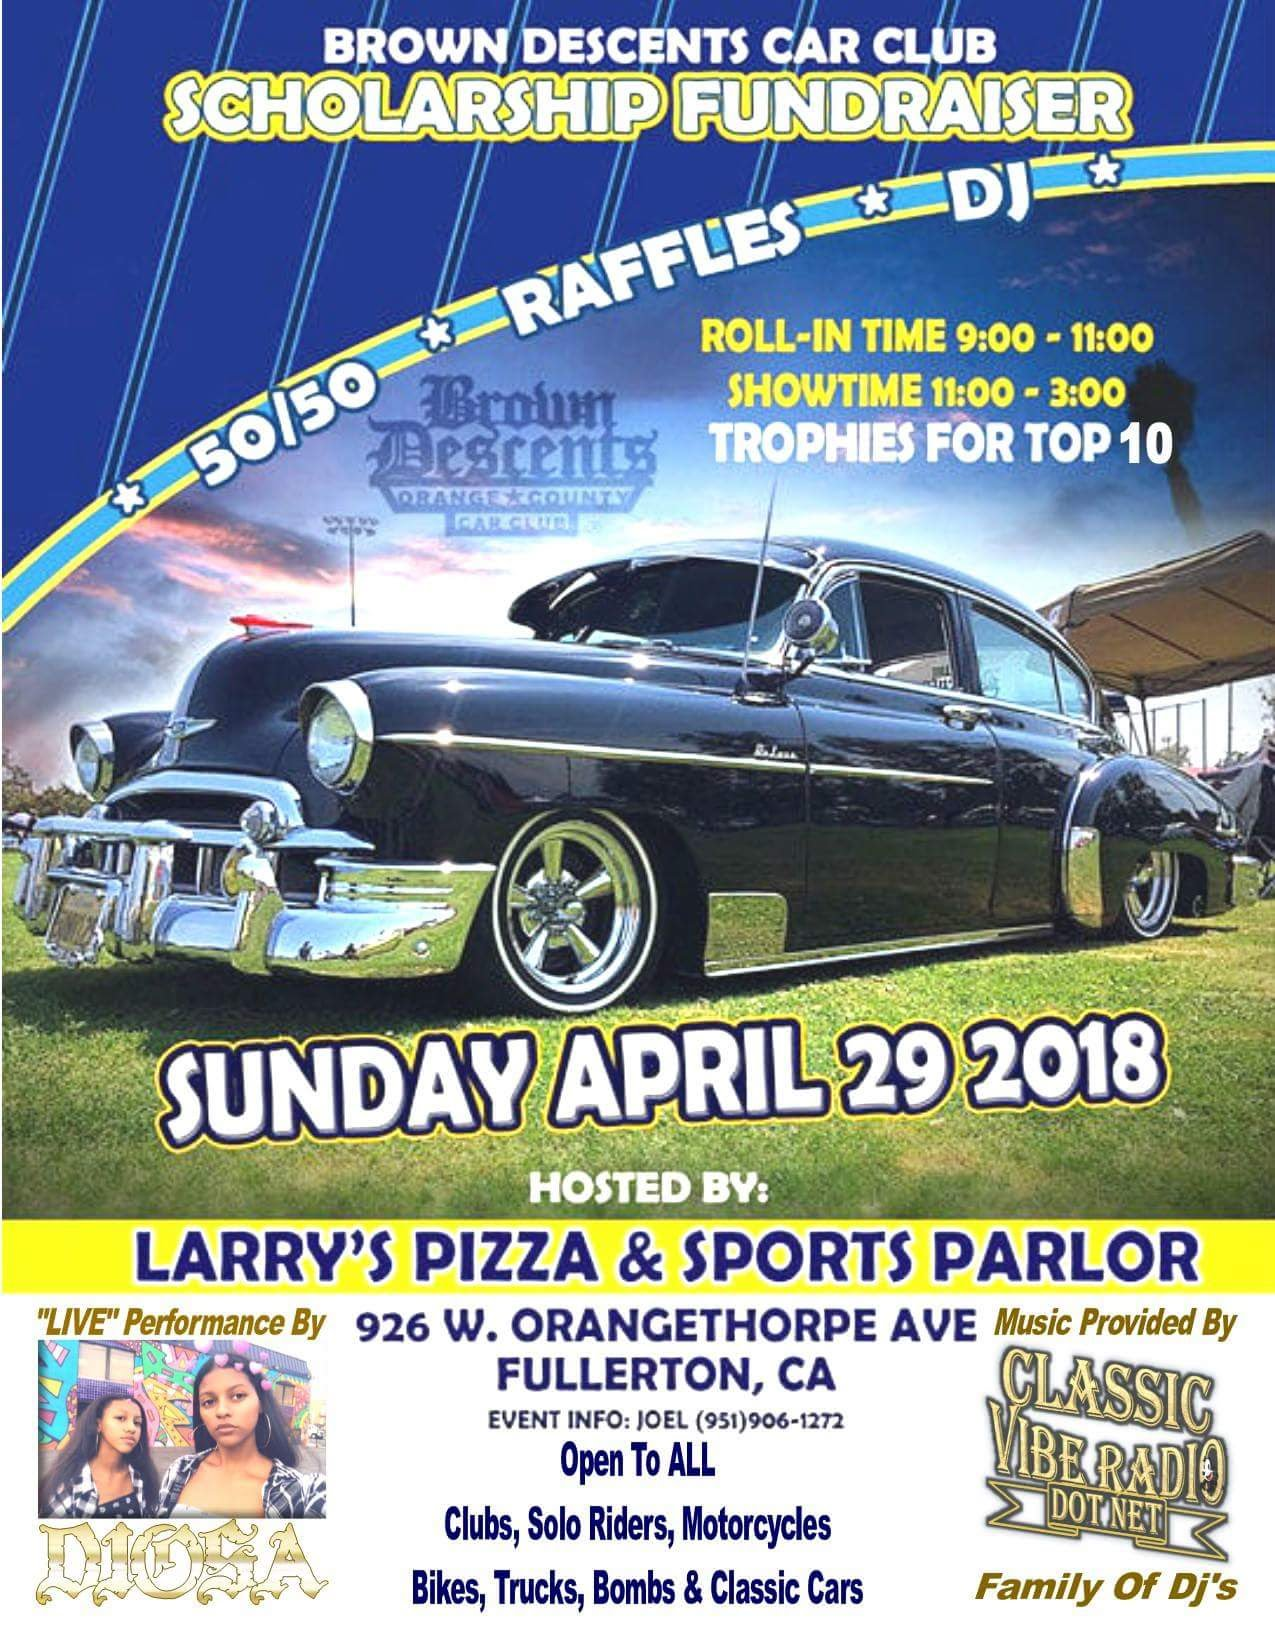 Brown Descents Car Club Car Show 2018